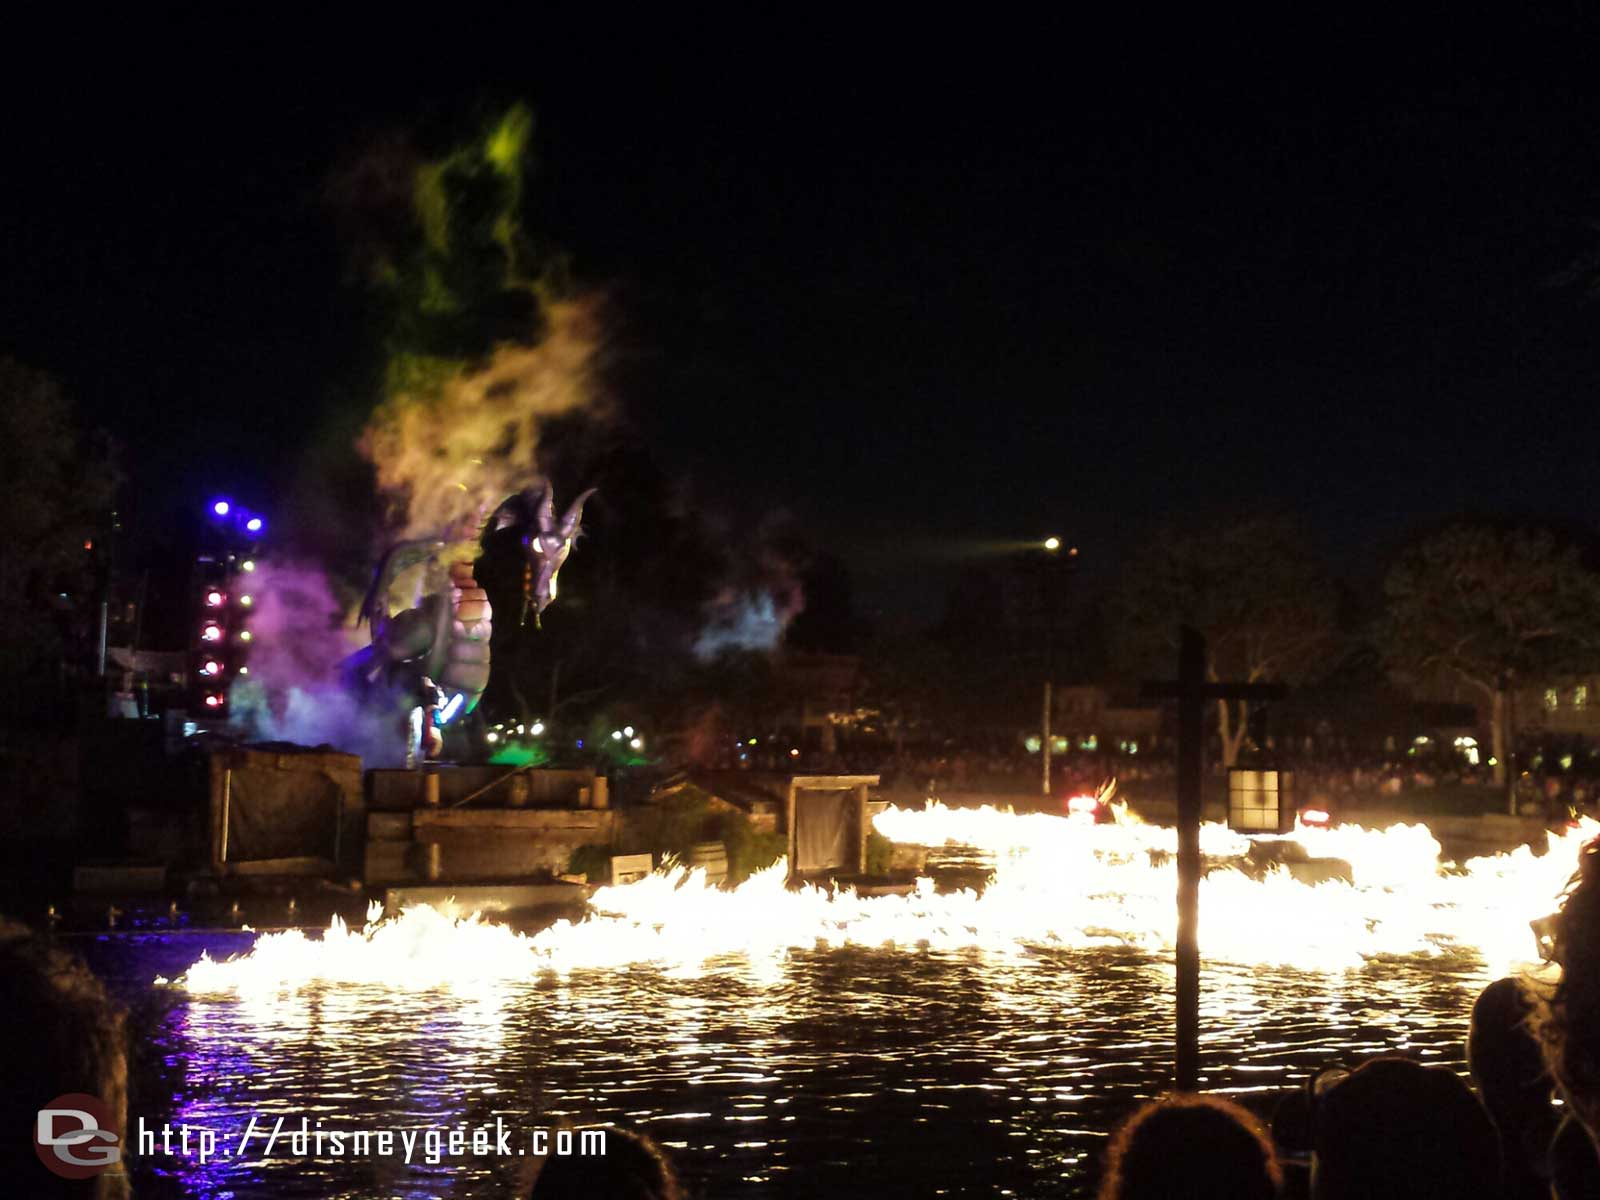 #Fantasmic Mickey battling Maleficent  dragon #Disneyland